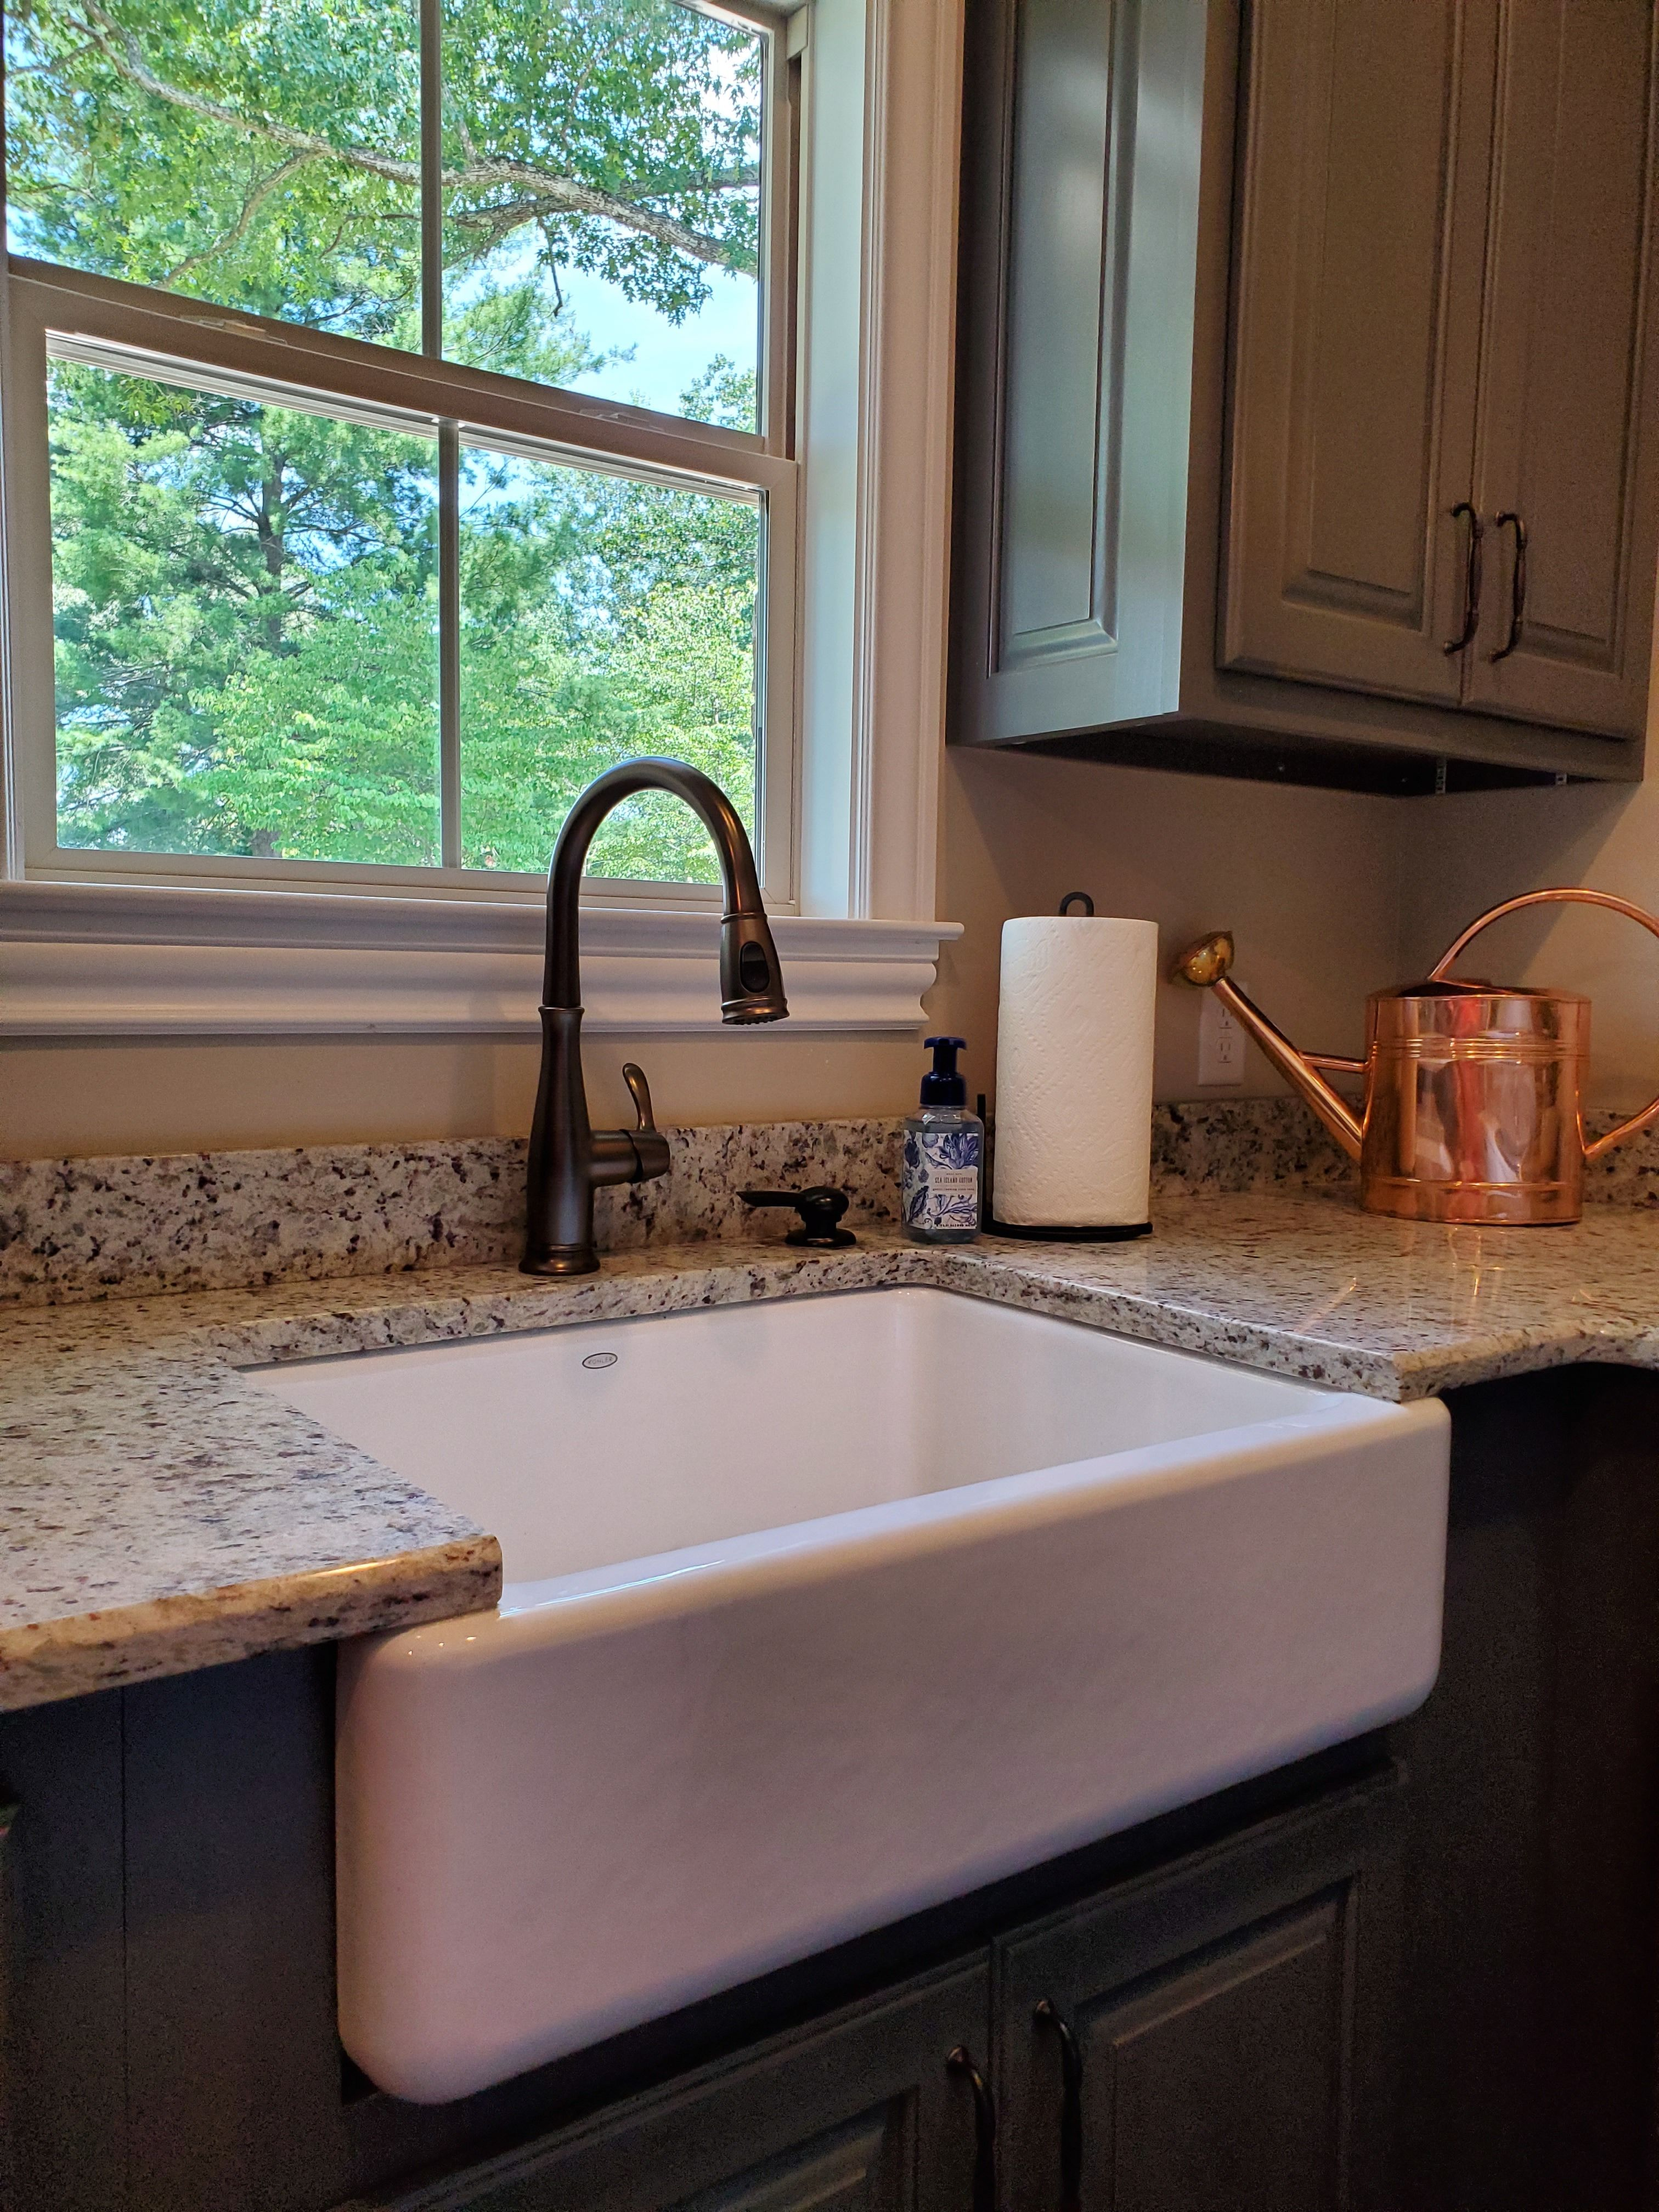 white porcelain farmhouse kitchen sink with granite countertops by bison countertops on farmhouse kitchen granite countertops id=96425